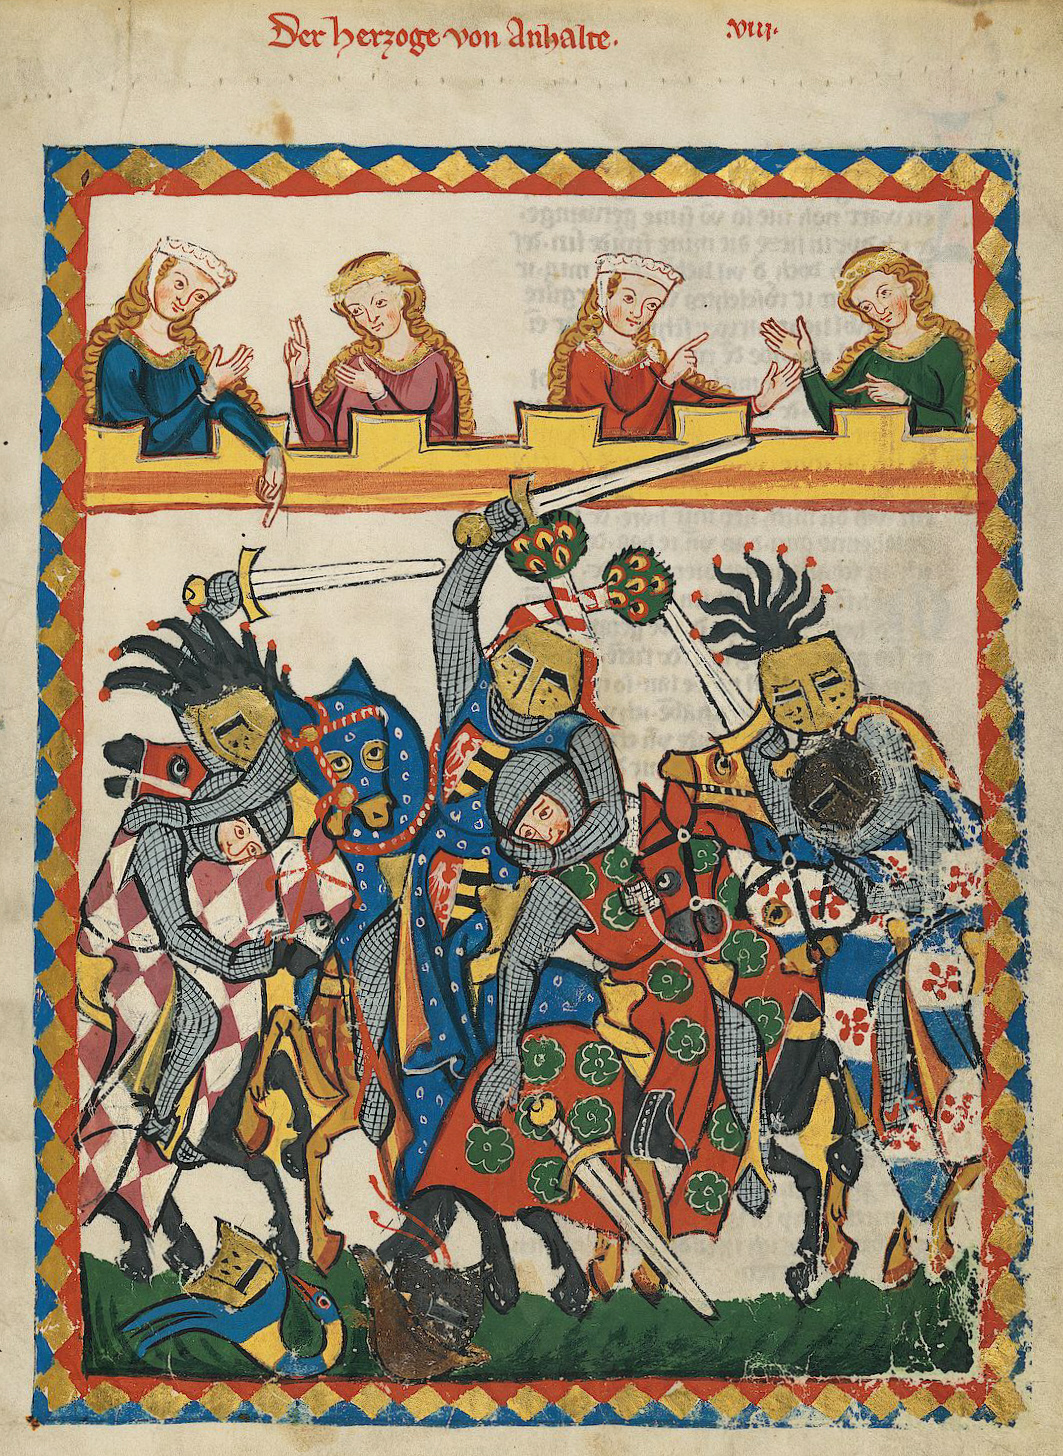 http://upload.wikimedia.org/wikipedia/commons/1/1d/Codex_Manesse_%28Herzog%29_von_Anhalt.jpg